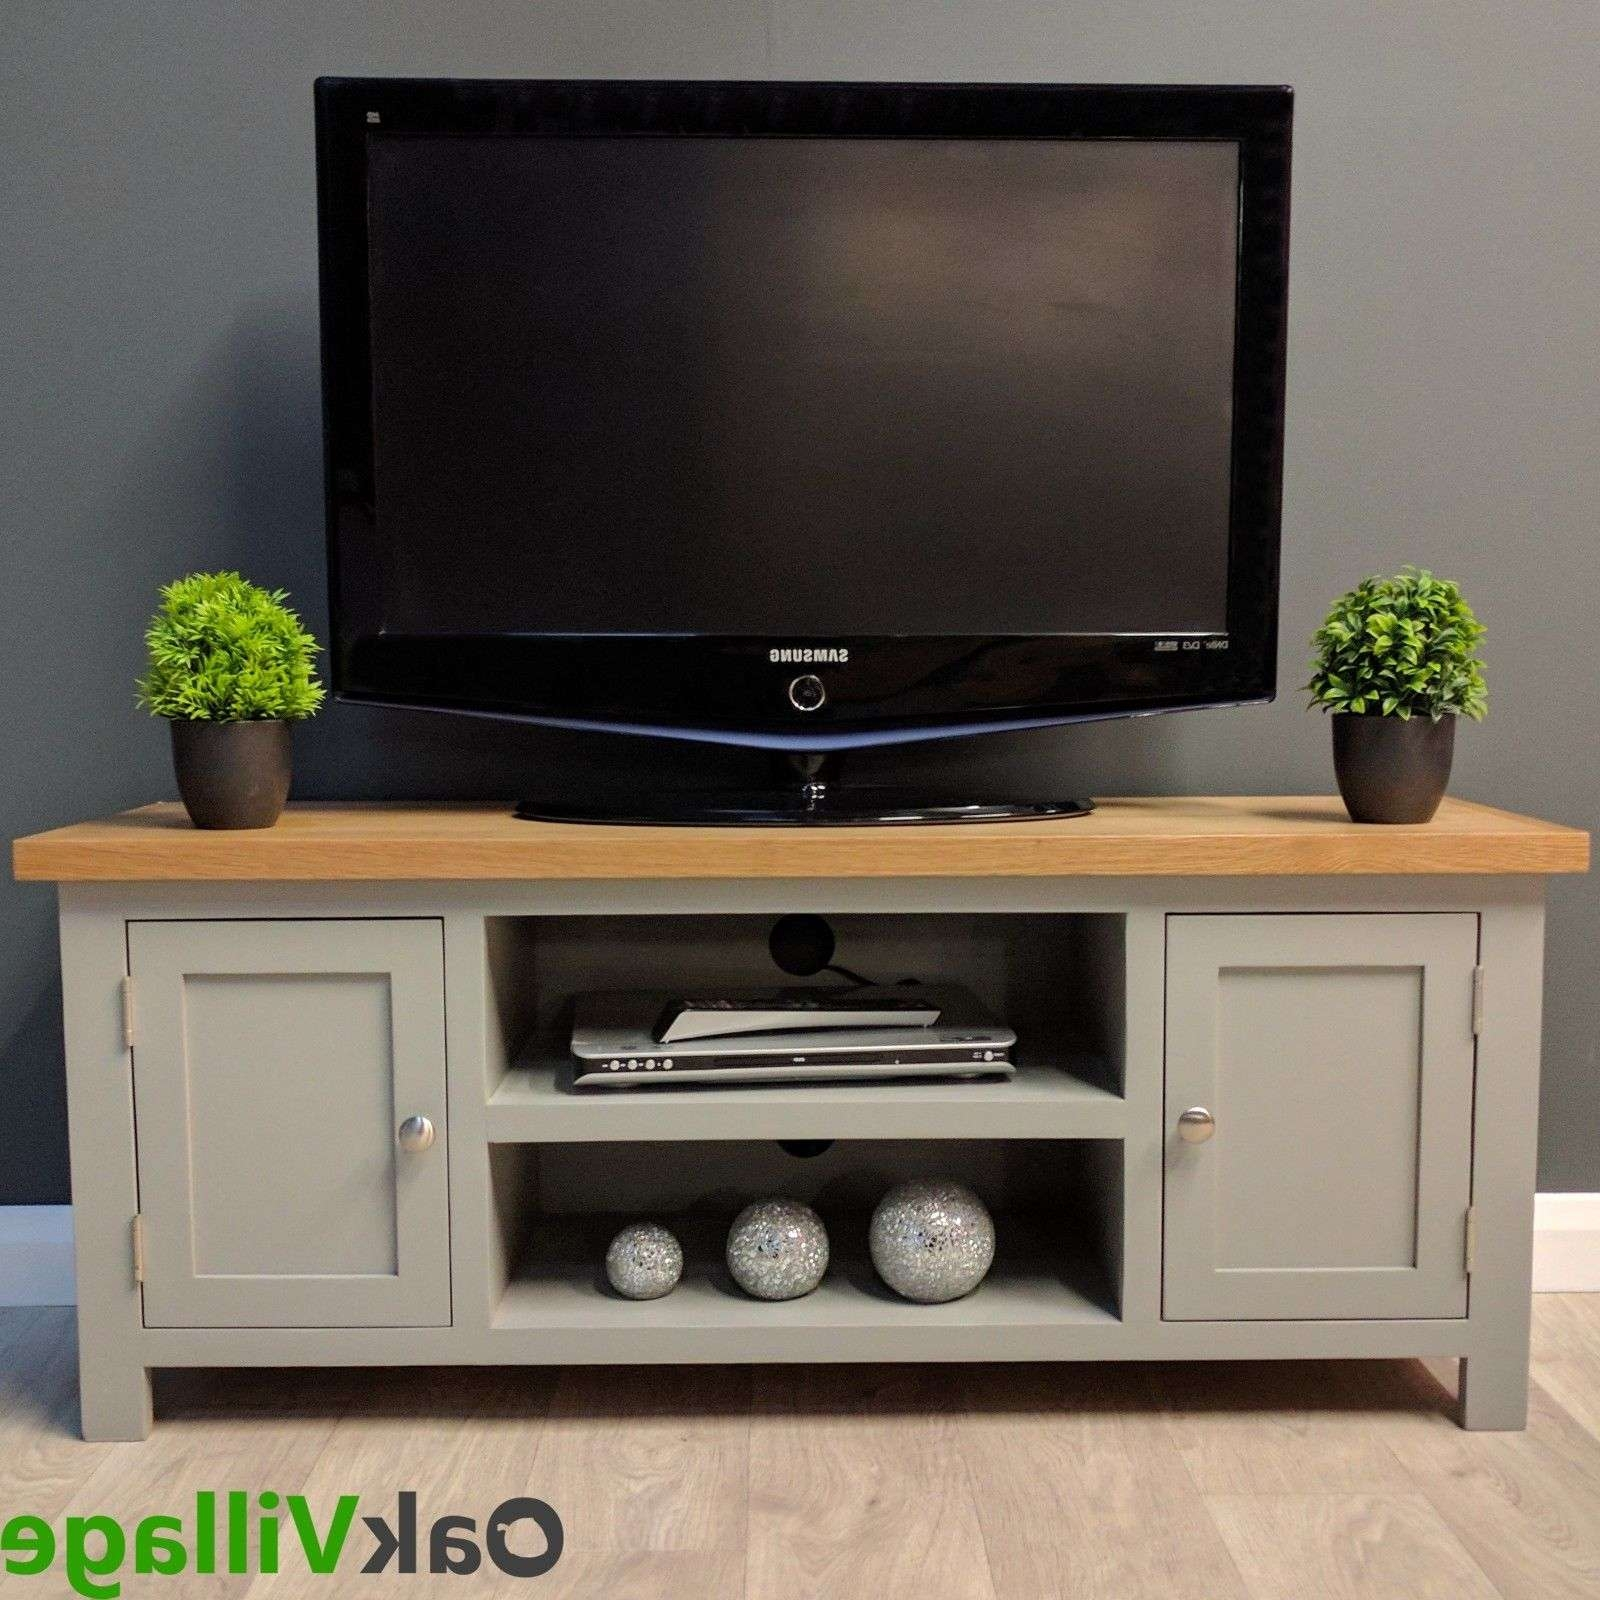 Oak Tv Stands | Ebay Inside Large Oak Tv Stands (View 11 of 15)